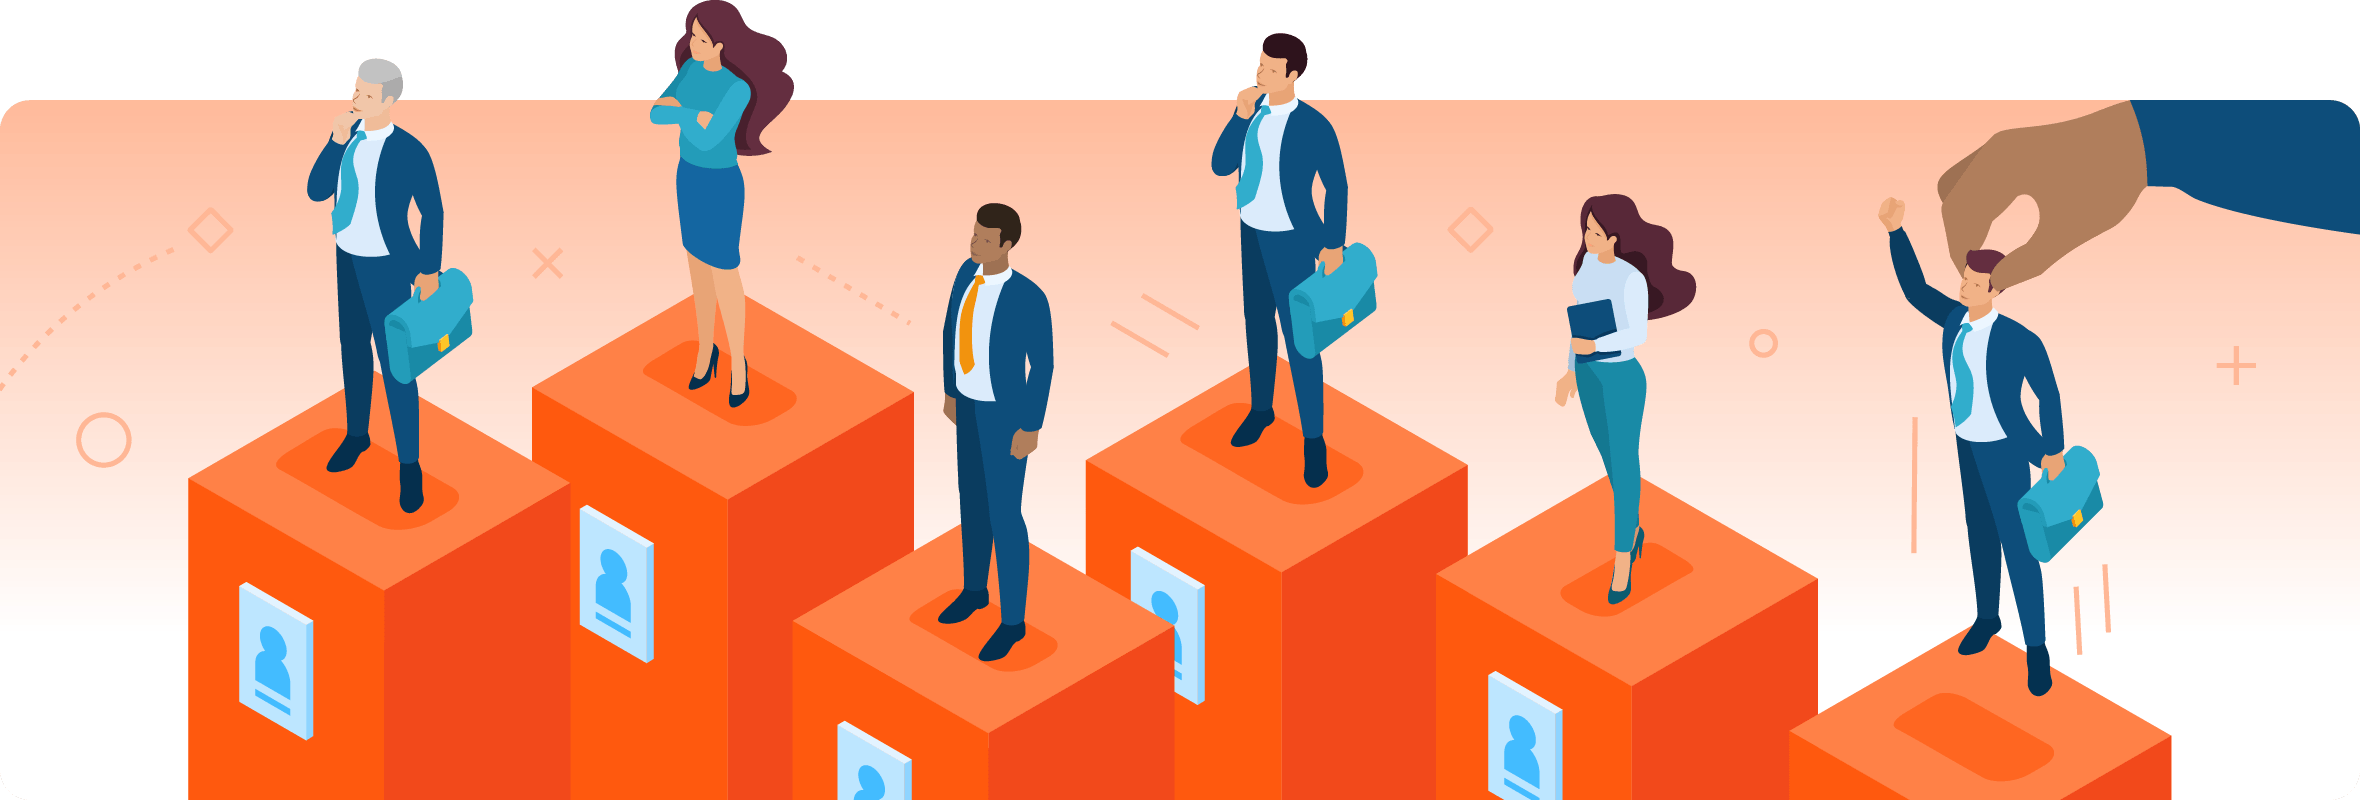 While the lack of potential candidates is a challenge we are all experiencing, there are many actions you can take to make your firm stand out above the rest. By doing so, you will find candidates choosing your firm over the others and staying put for the long haul.